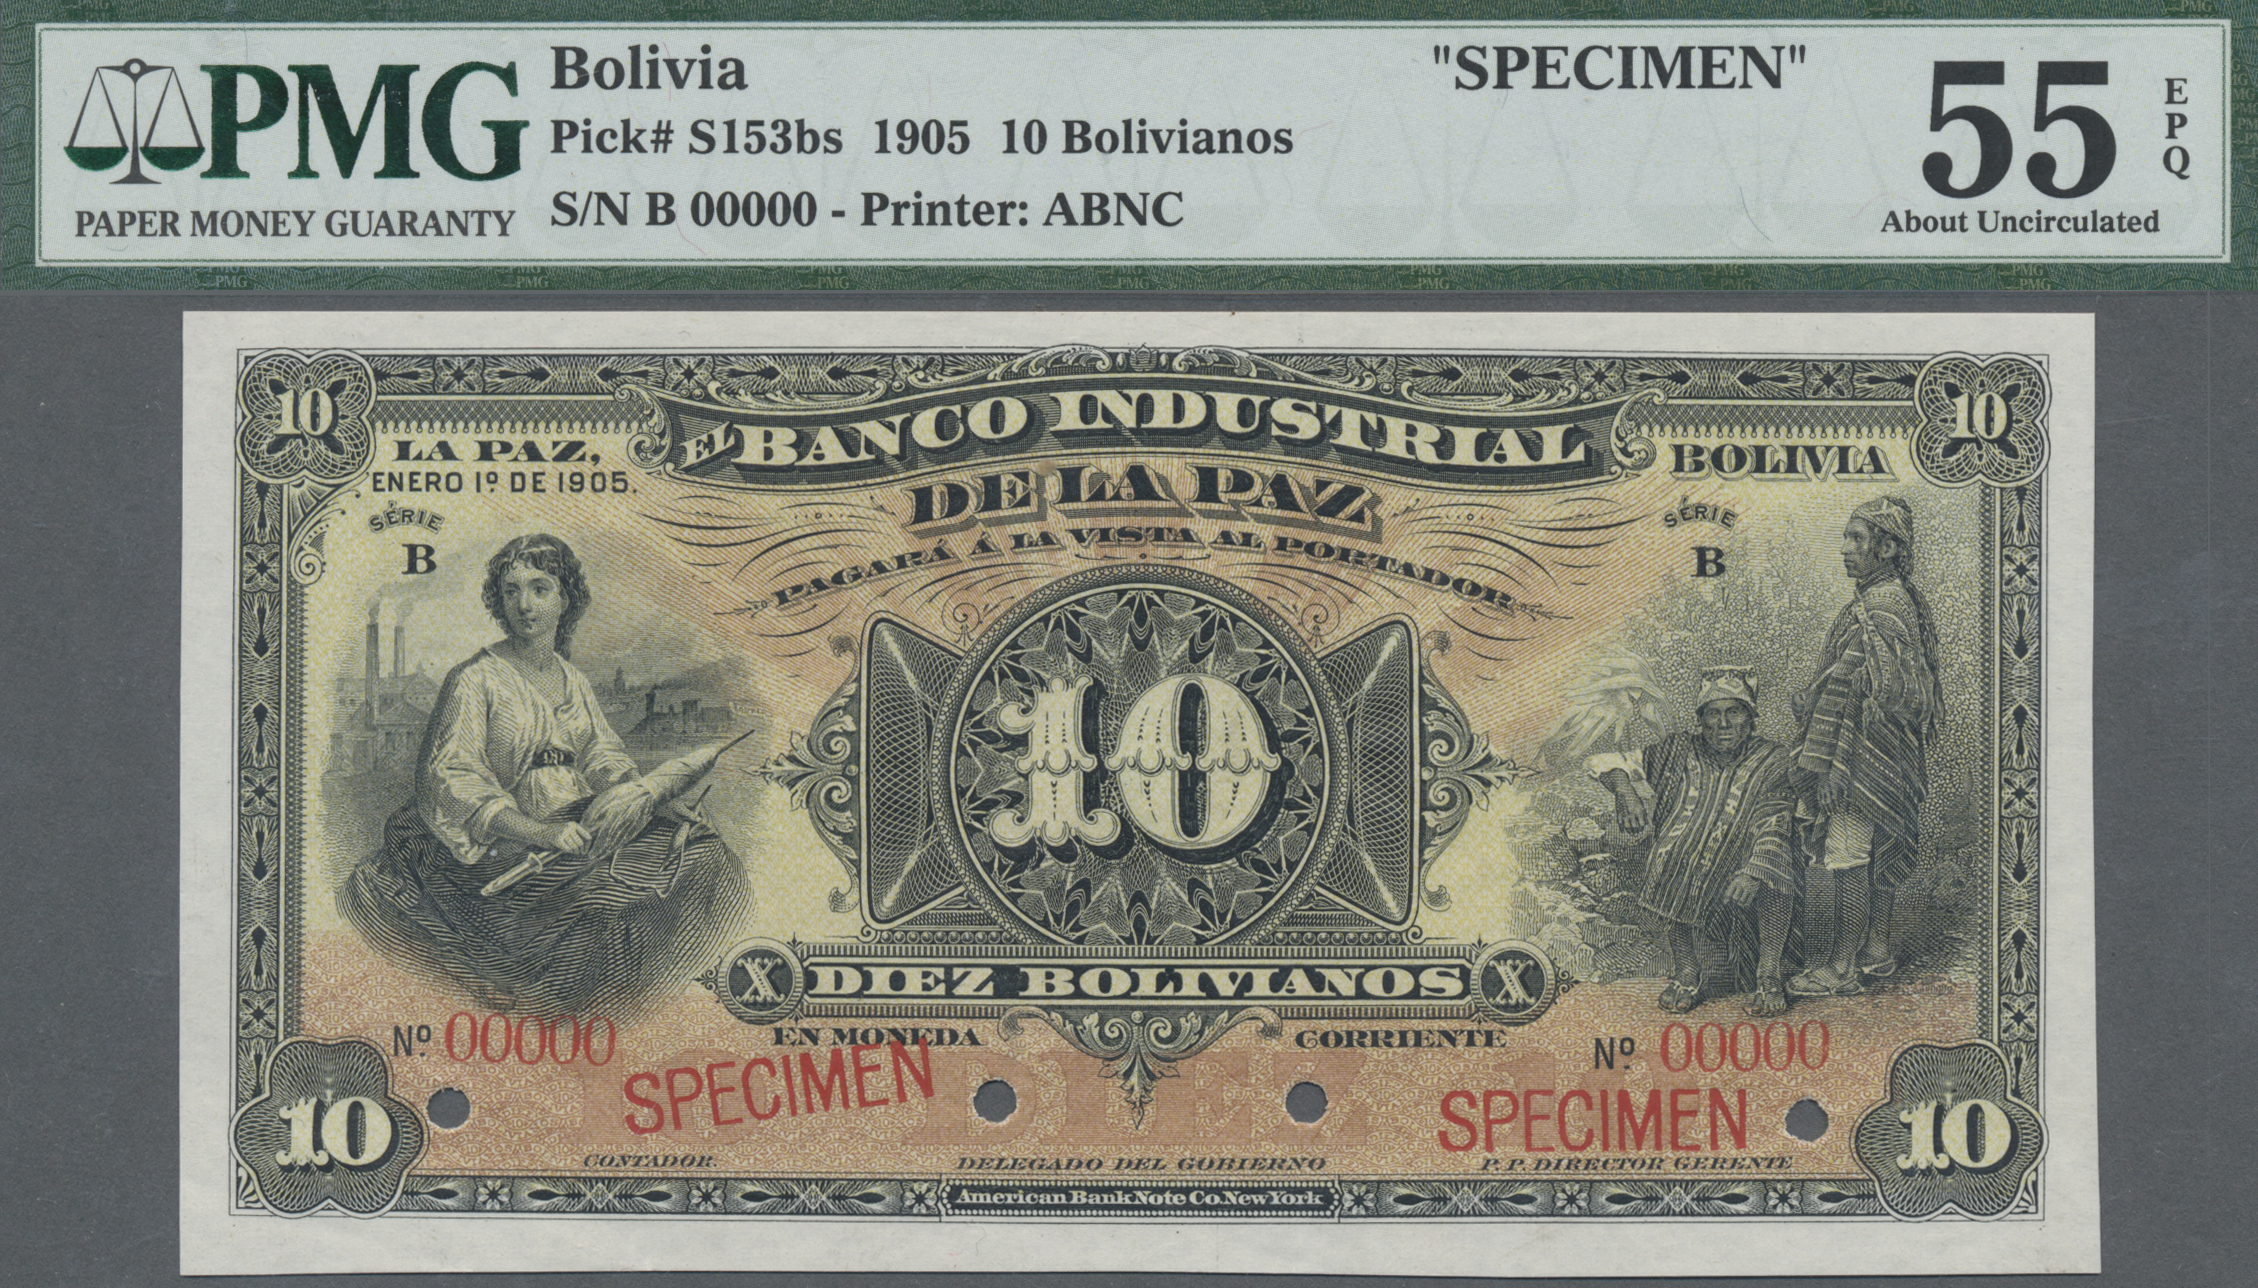 Lot 00065 - Bolivia / Bolivien | Banknoten  -  Auktionshaus Christoph Gärtner GmbH & Co. KG Sale #48 The Banknotes